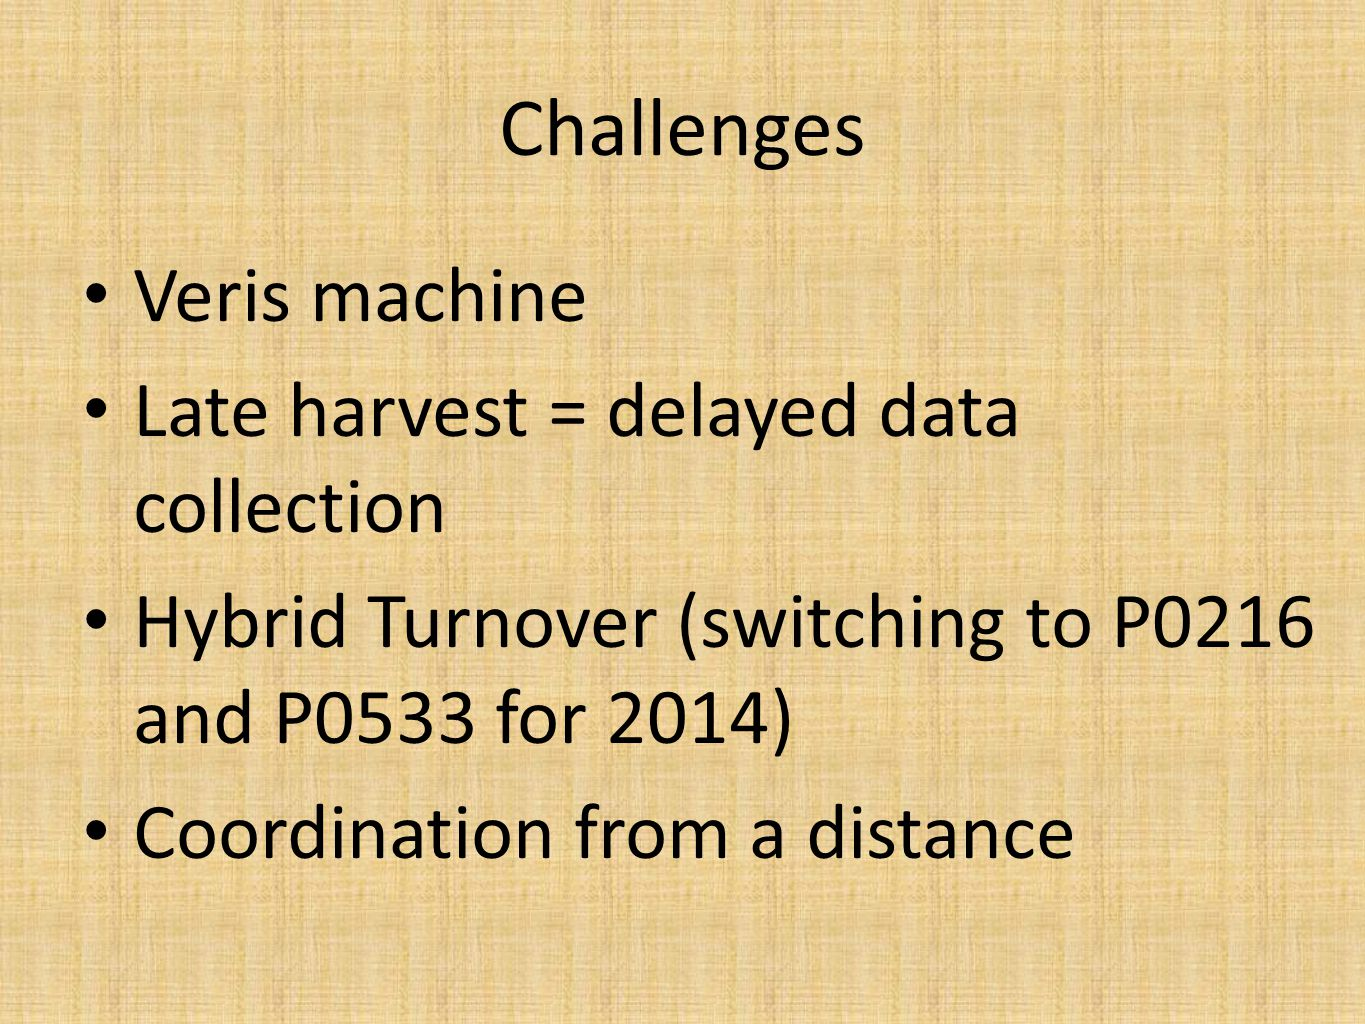 Veris machine Late harvest = delayed data collection Hybrid Turnover (switching to P0216 and P0533 for 2014) Coordination from a distance